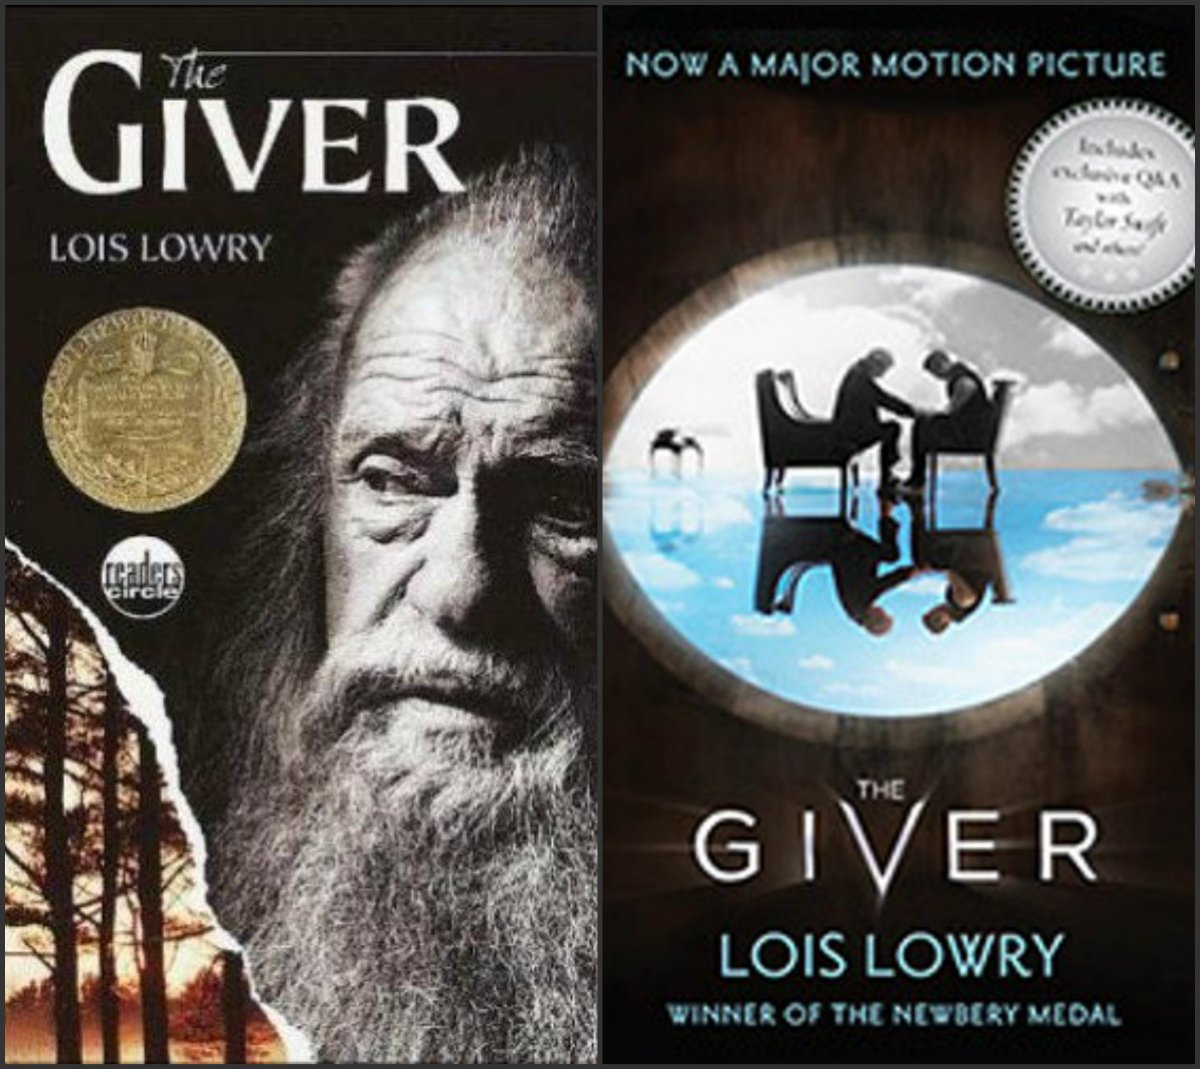 the giver book vs movie